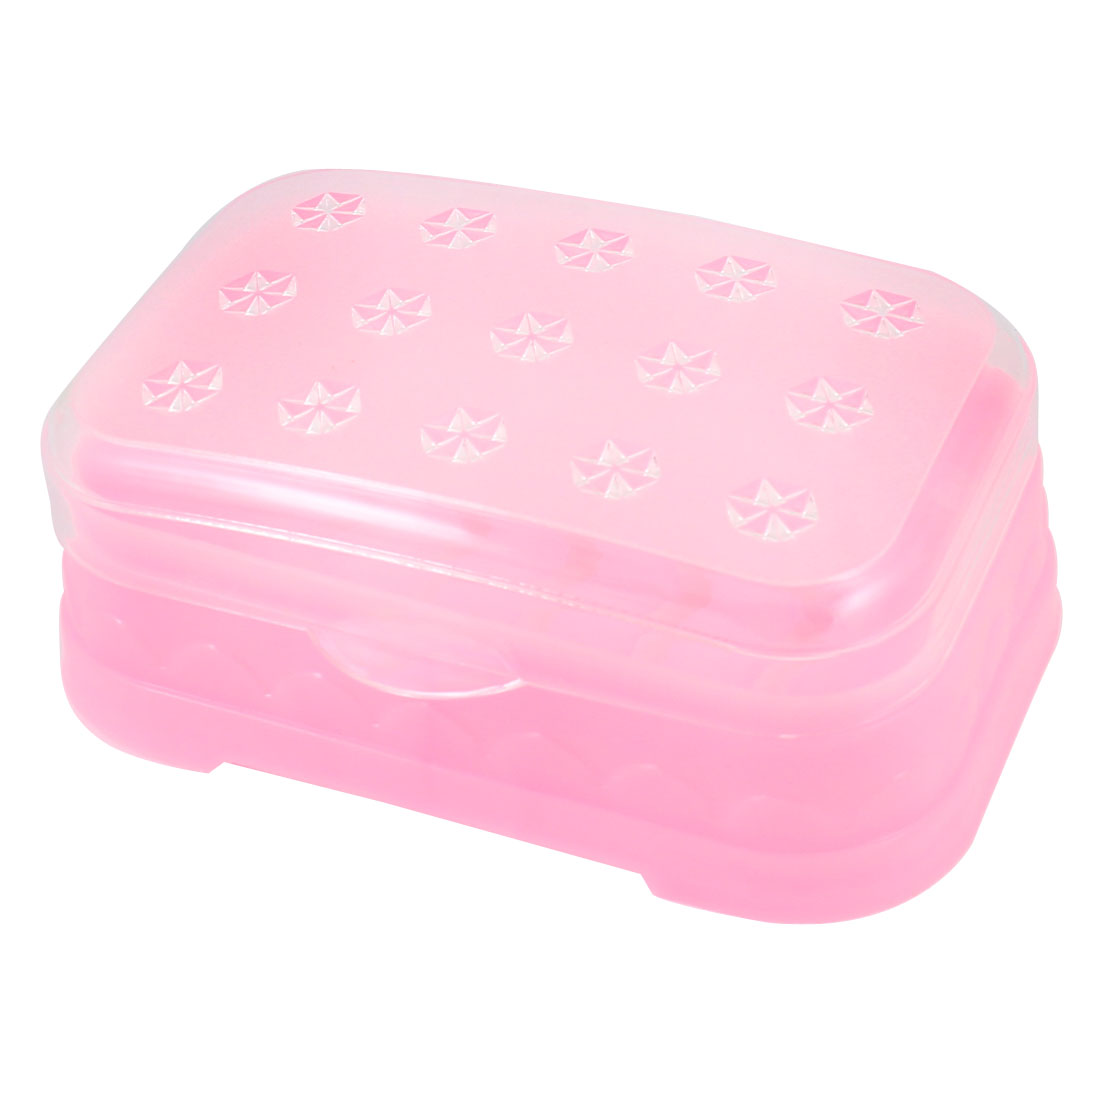 Hexagon Flowers Pattern Clear Light Pink Rectangular Soap Dish Case Box